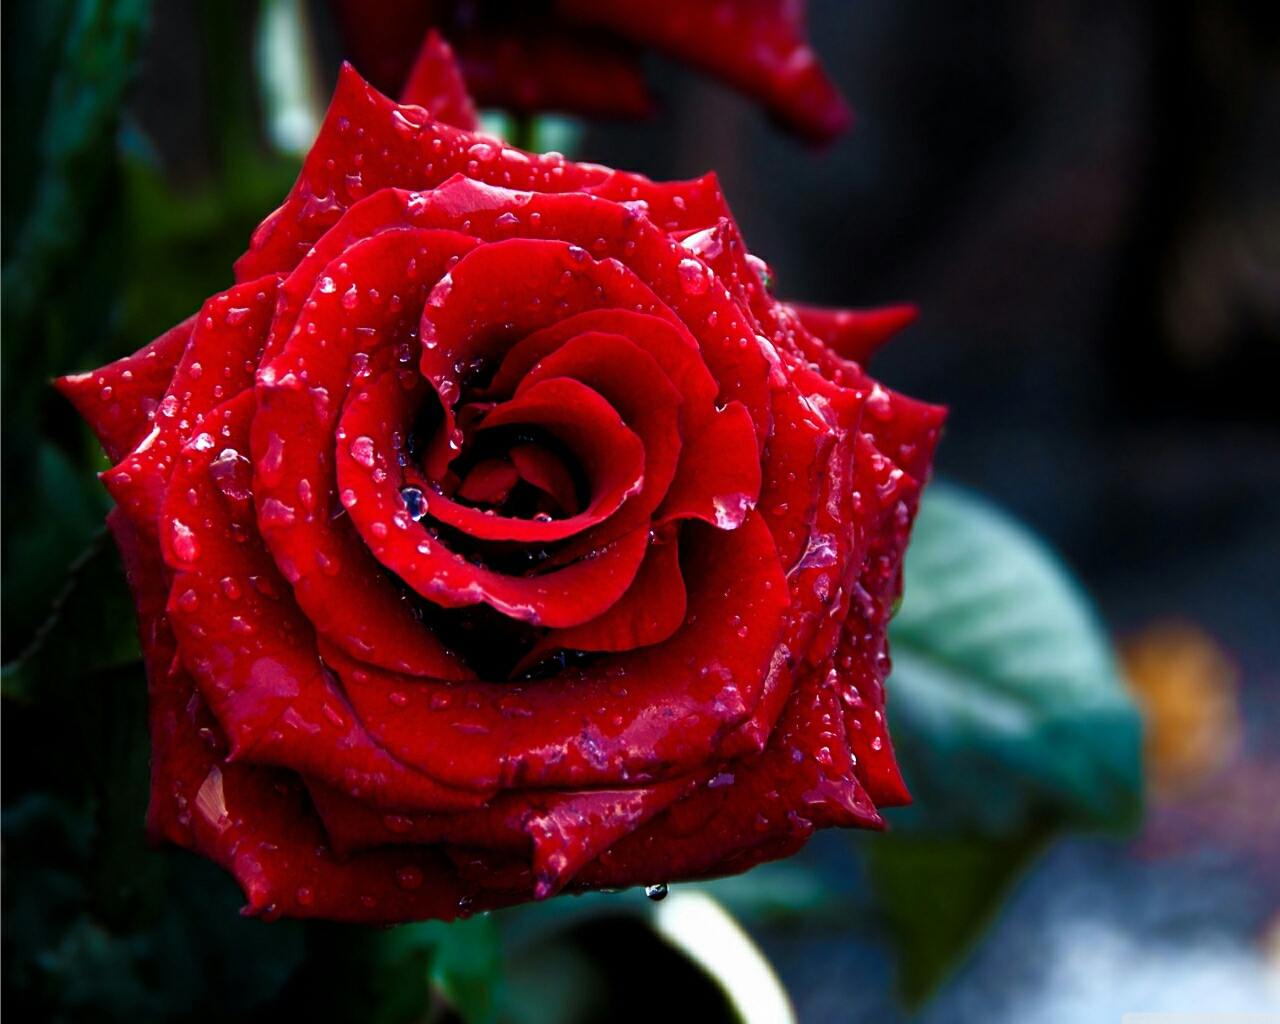 flowers for flower lovers.: Flowers wallpapers red roses.